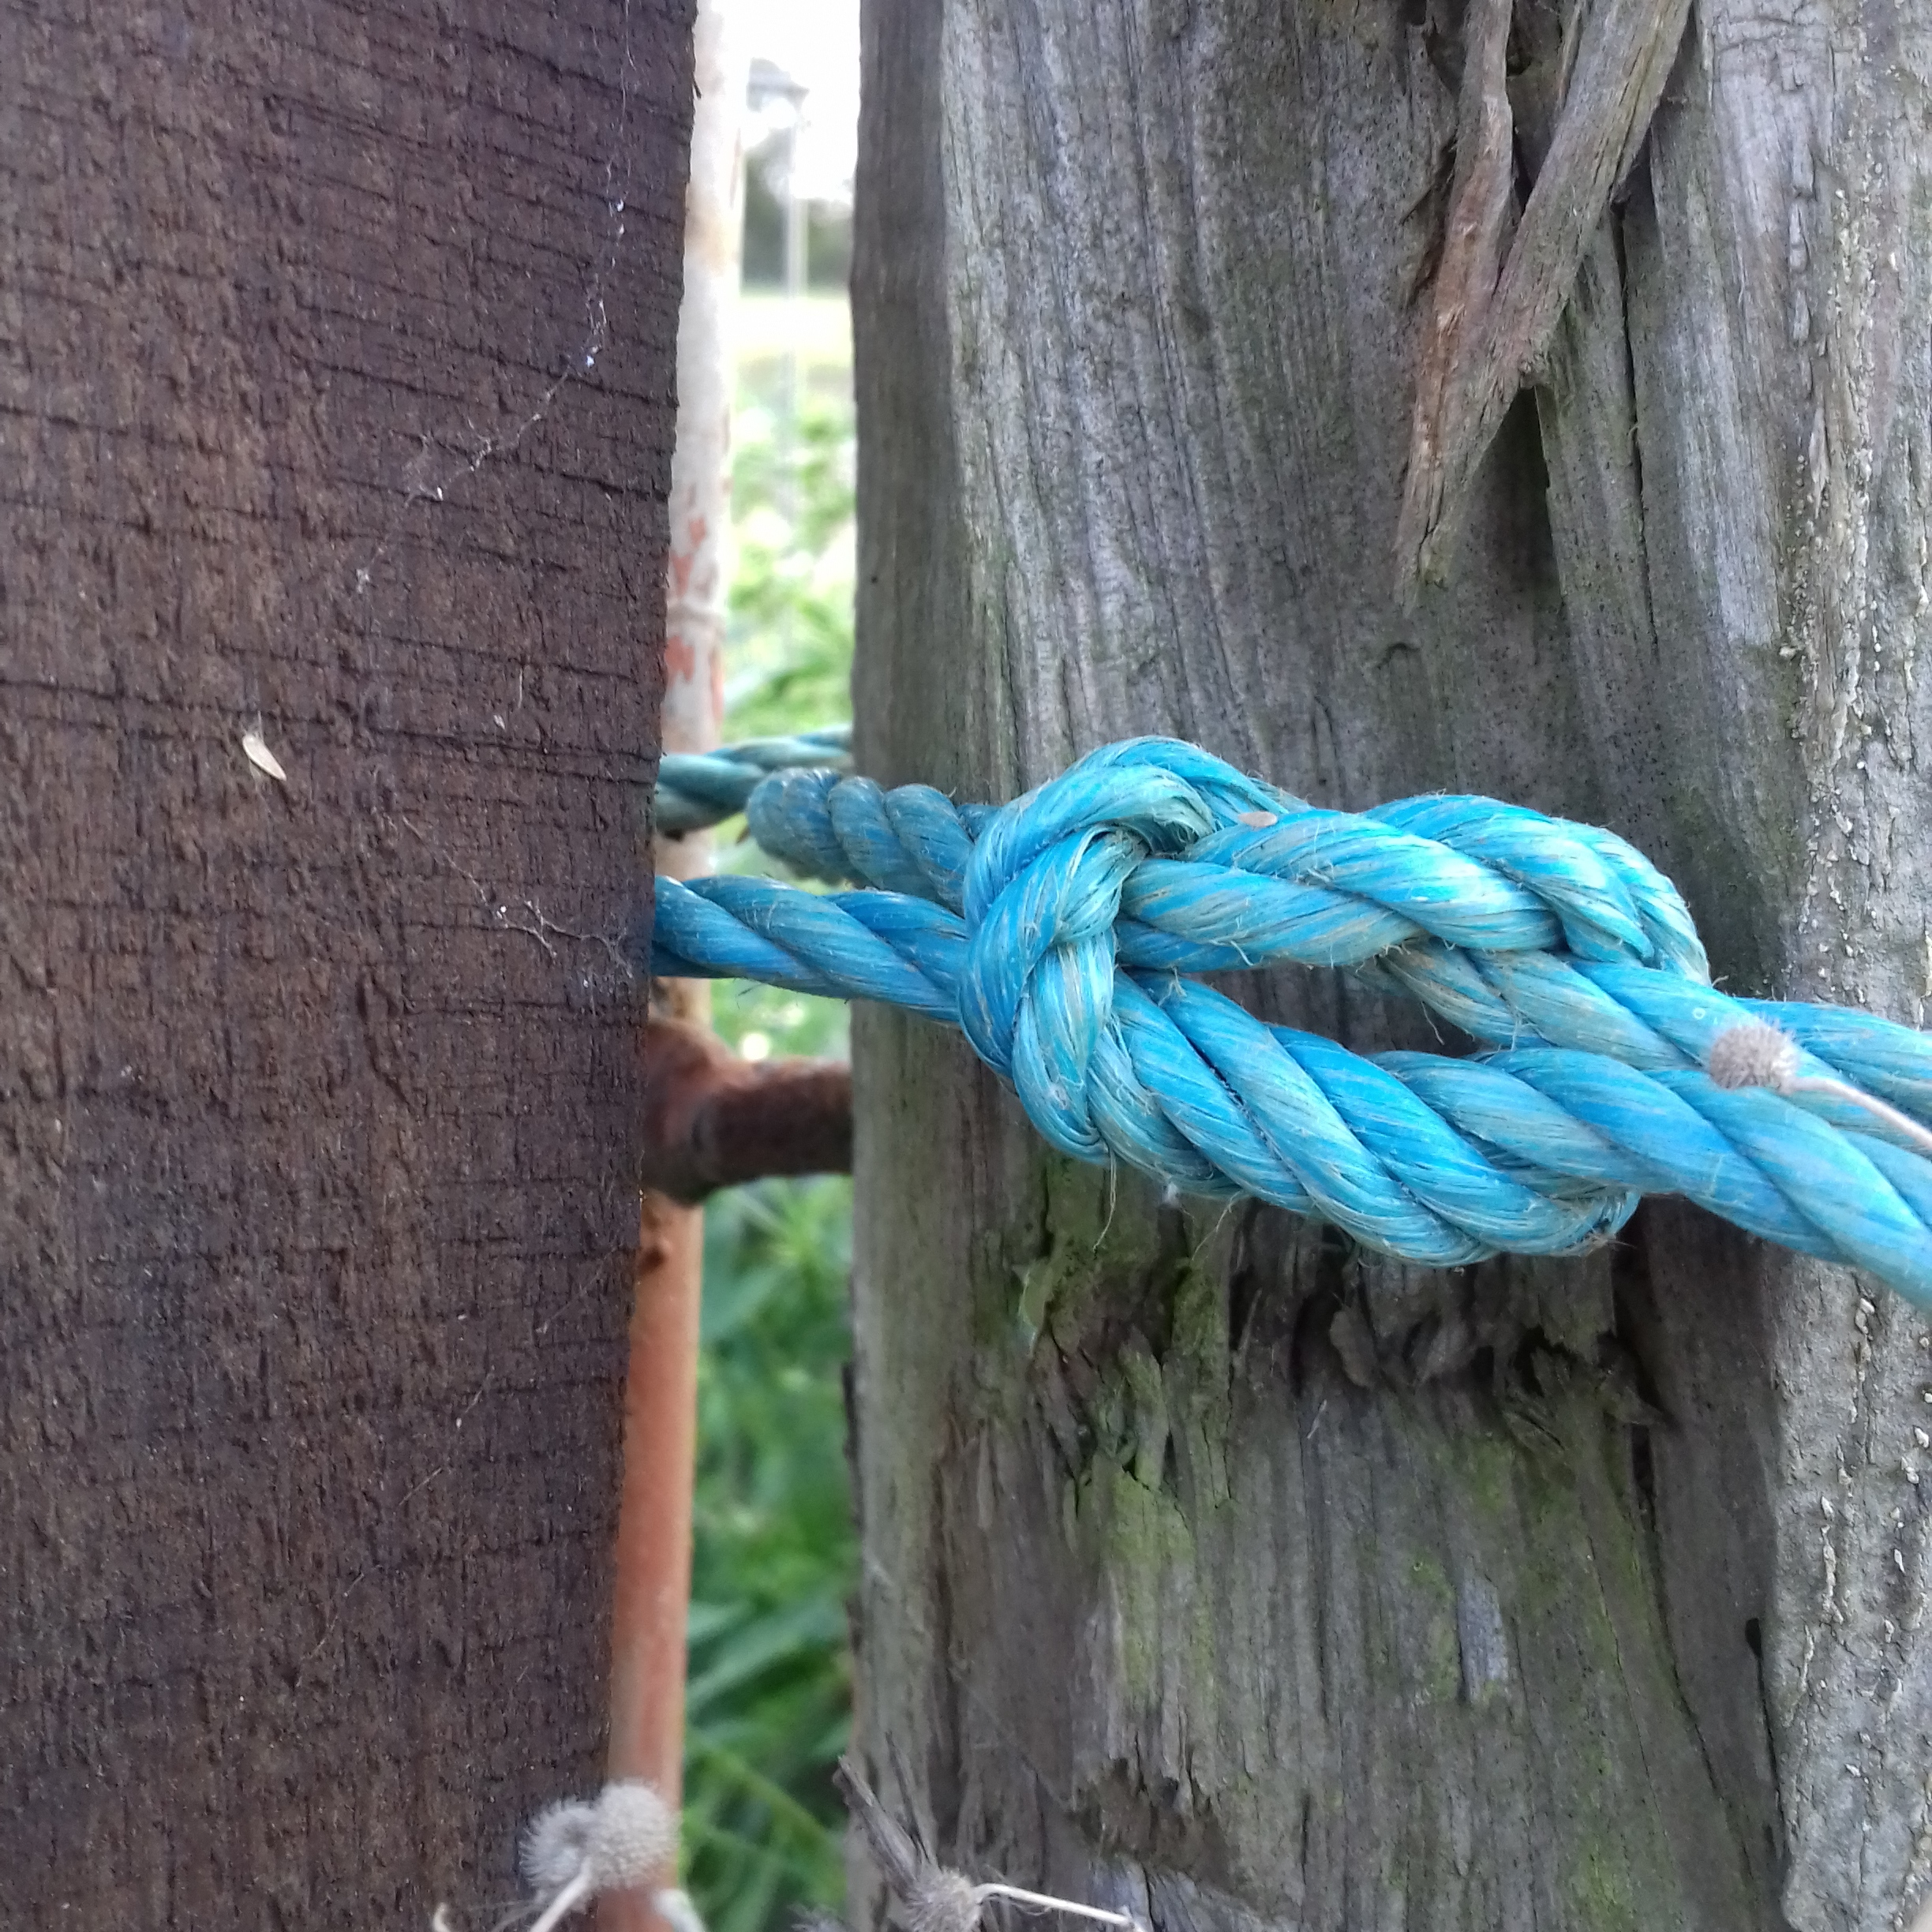 Knots,KNots,KNots! - An introduction to the basic knots you need for putting up tarpaulins, rope swings and other outdoor activities with children,2 hour workshop. £30 per setting plus travel. I can come to you.email: jo@timetoplayearlyyears.com